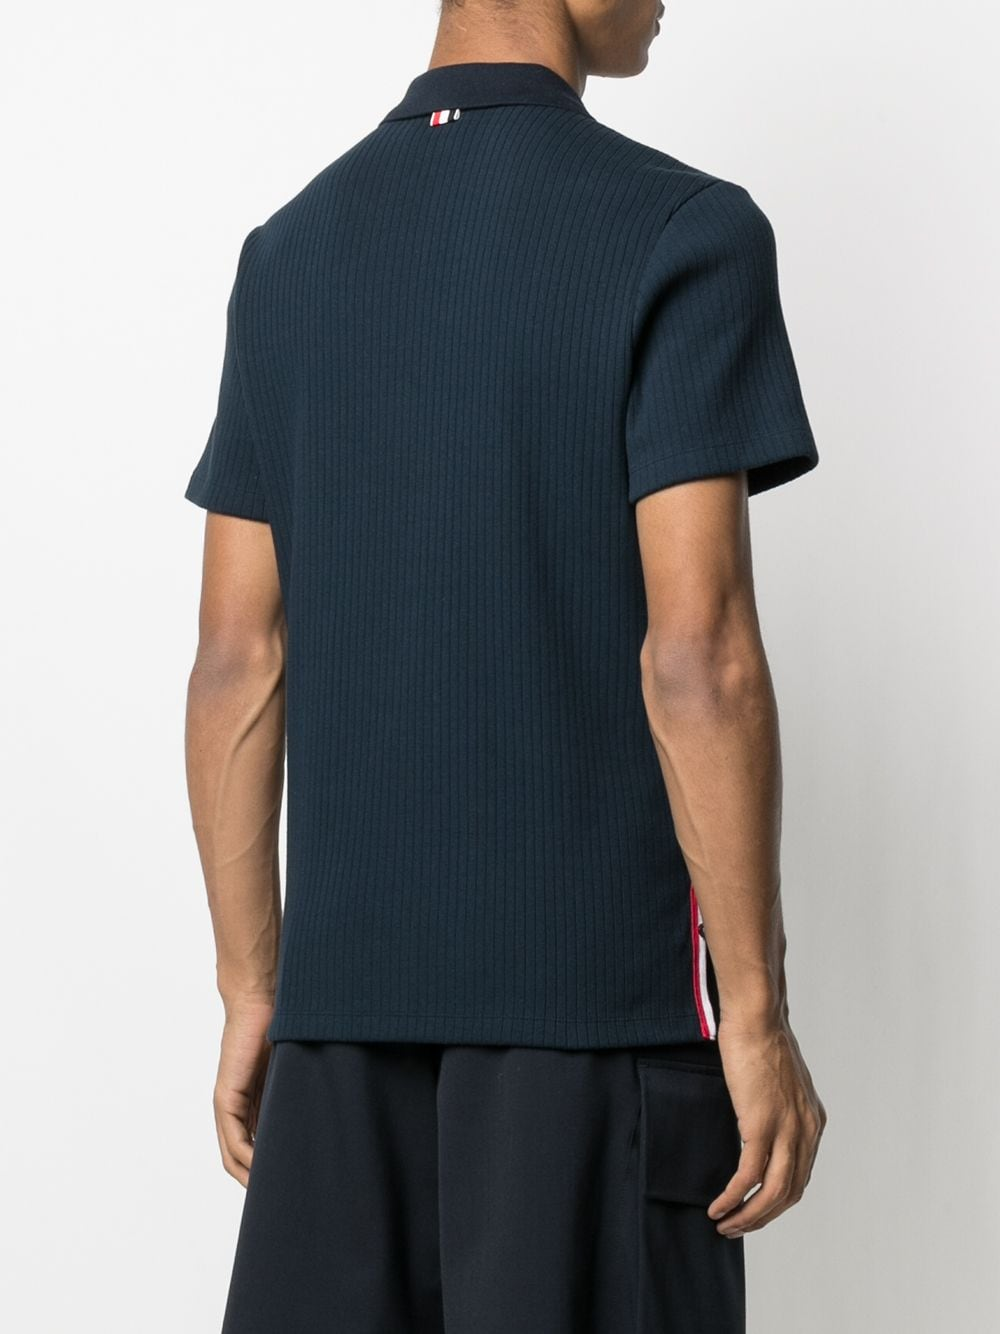 THOM BROWNE MEN SHORT SLEEVE POLO W/ 4 BAR COLLAR IN 5X2 RIB